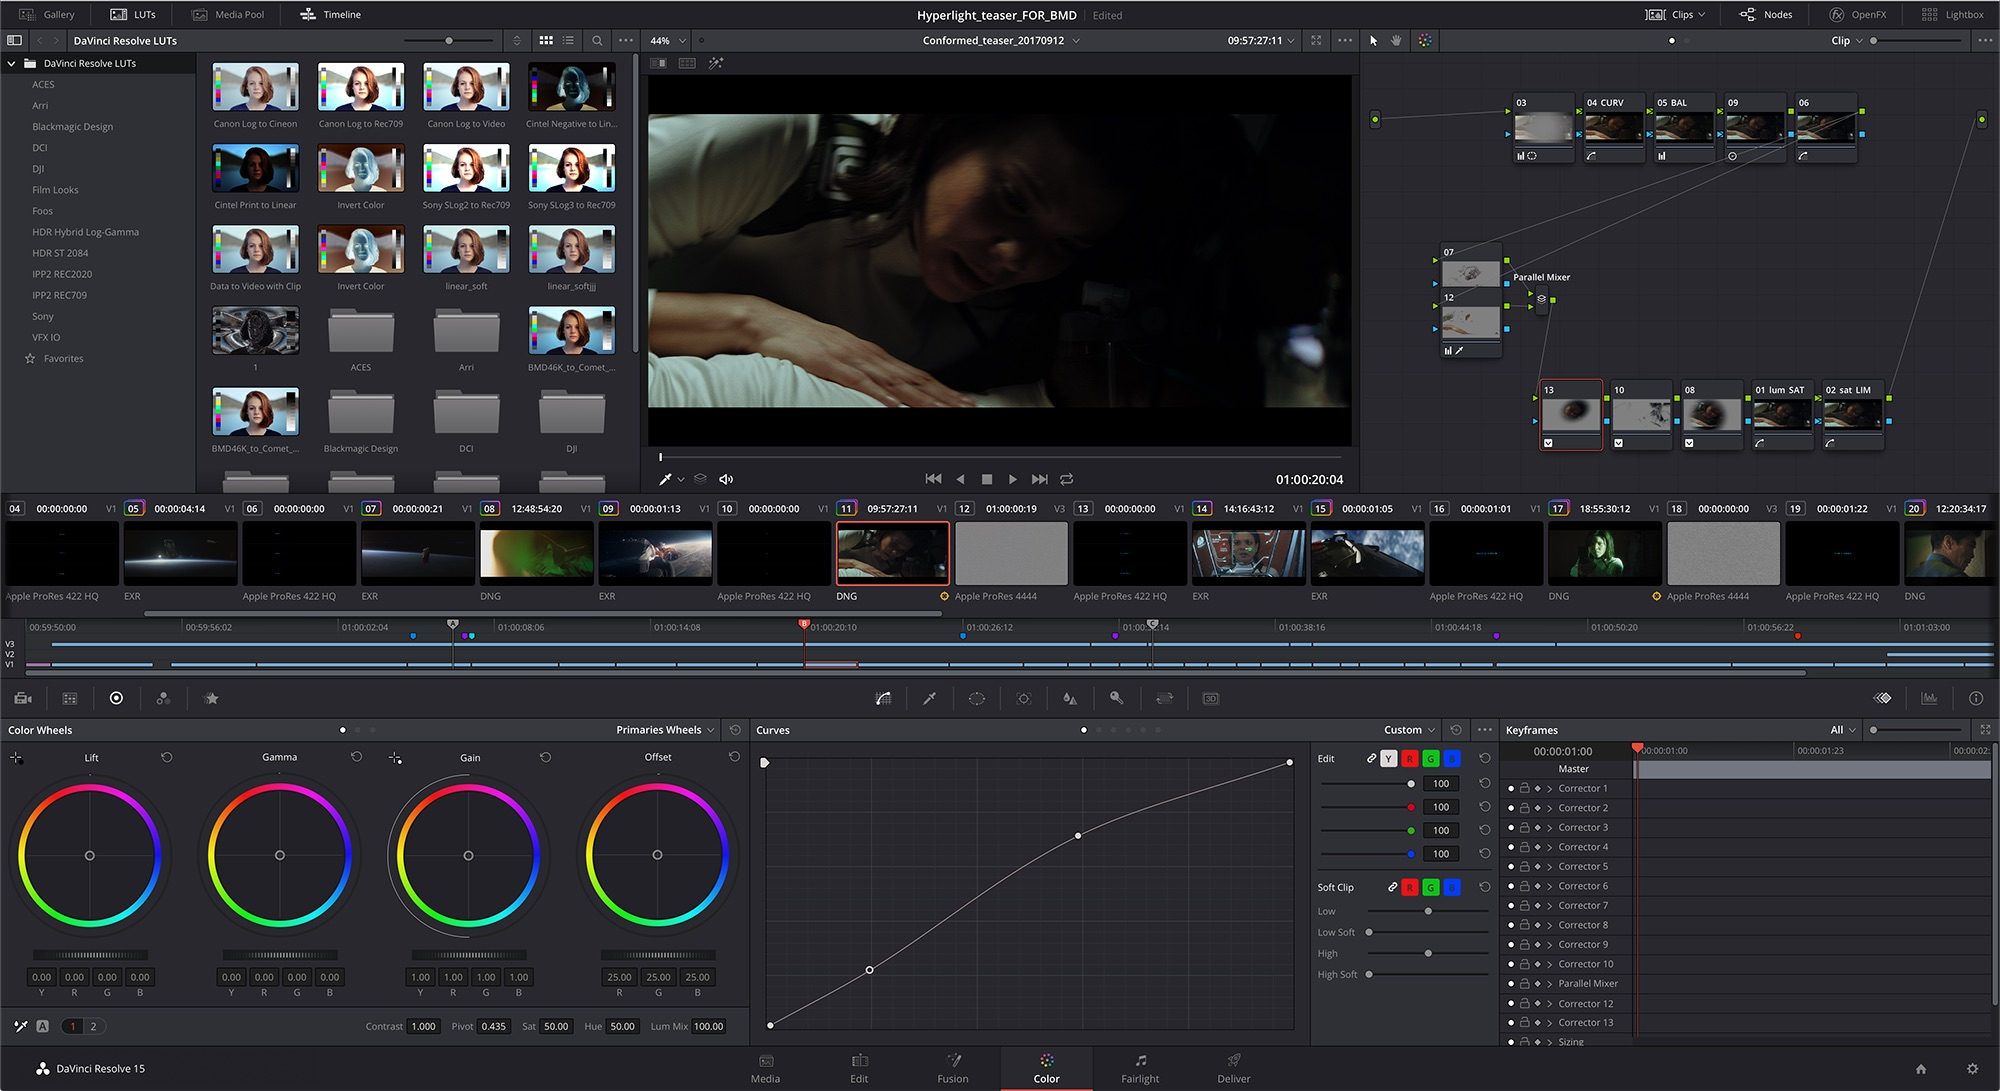 DaVinci Resolve 15 software released as a free beta